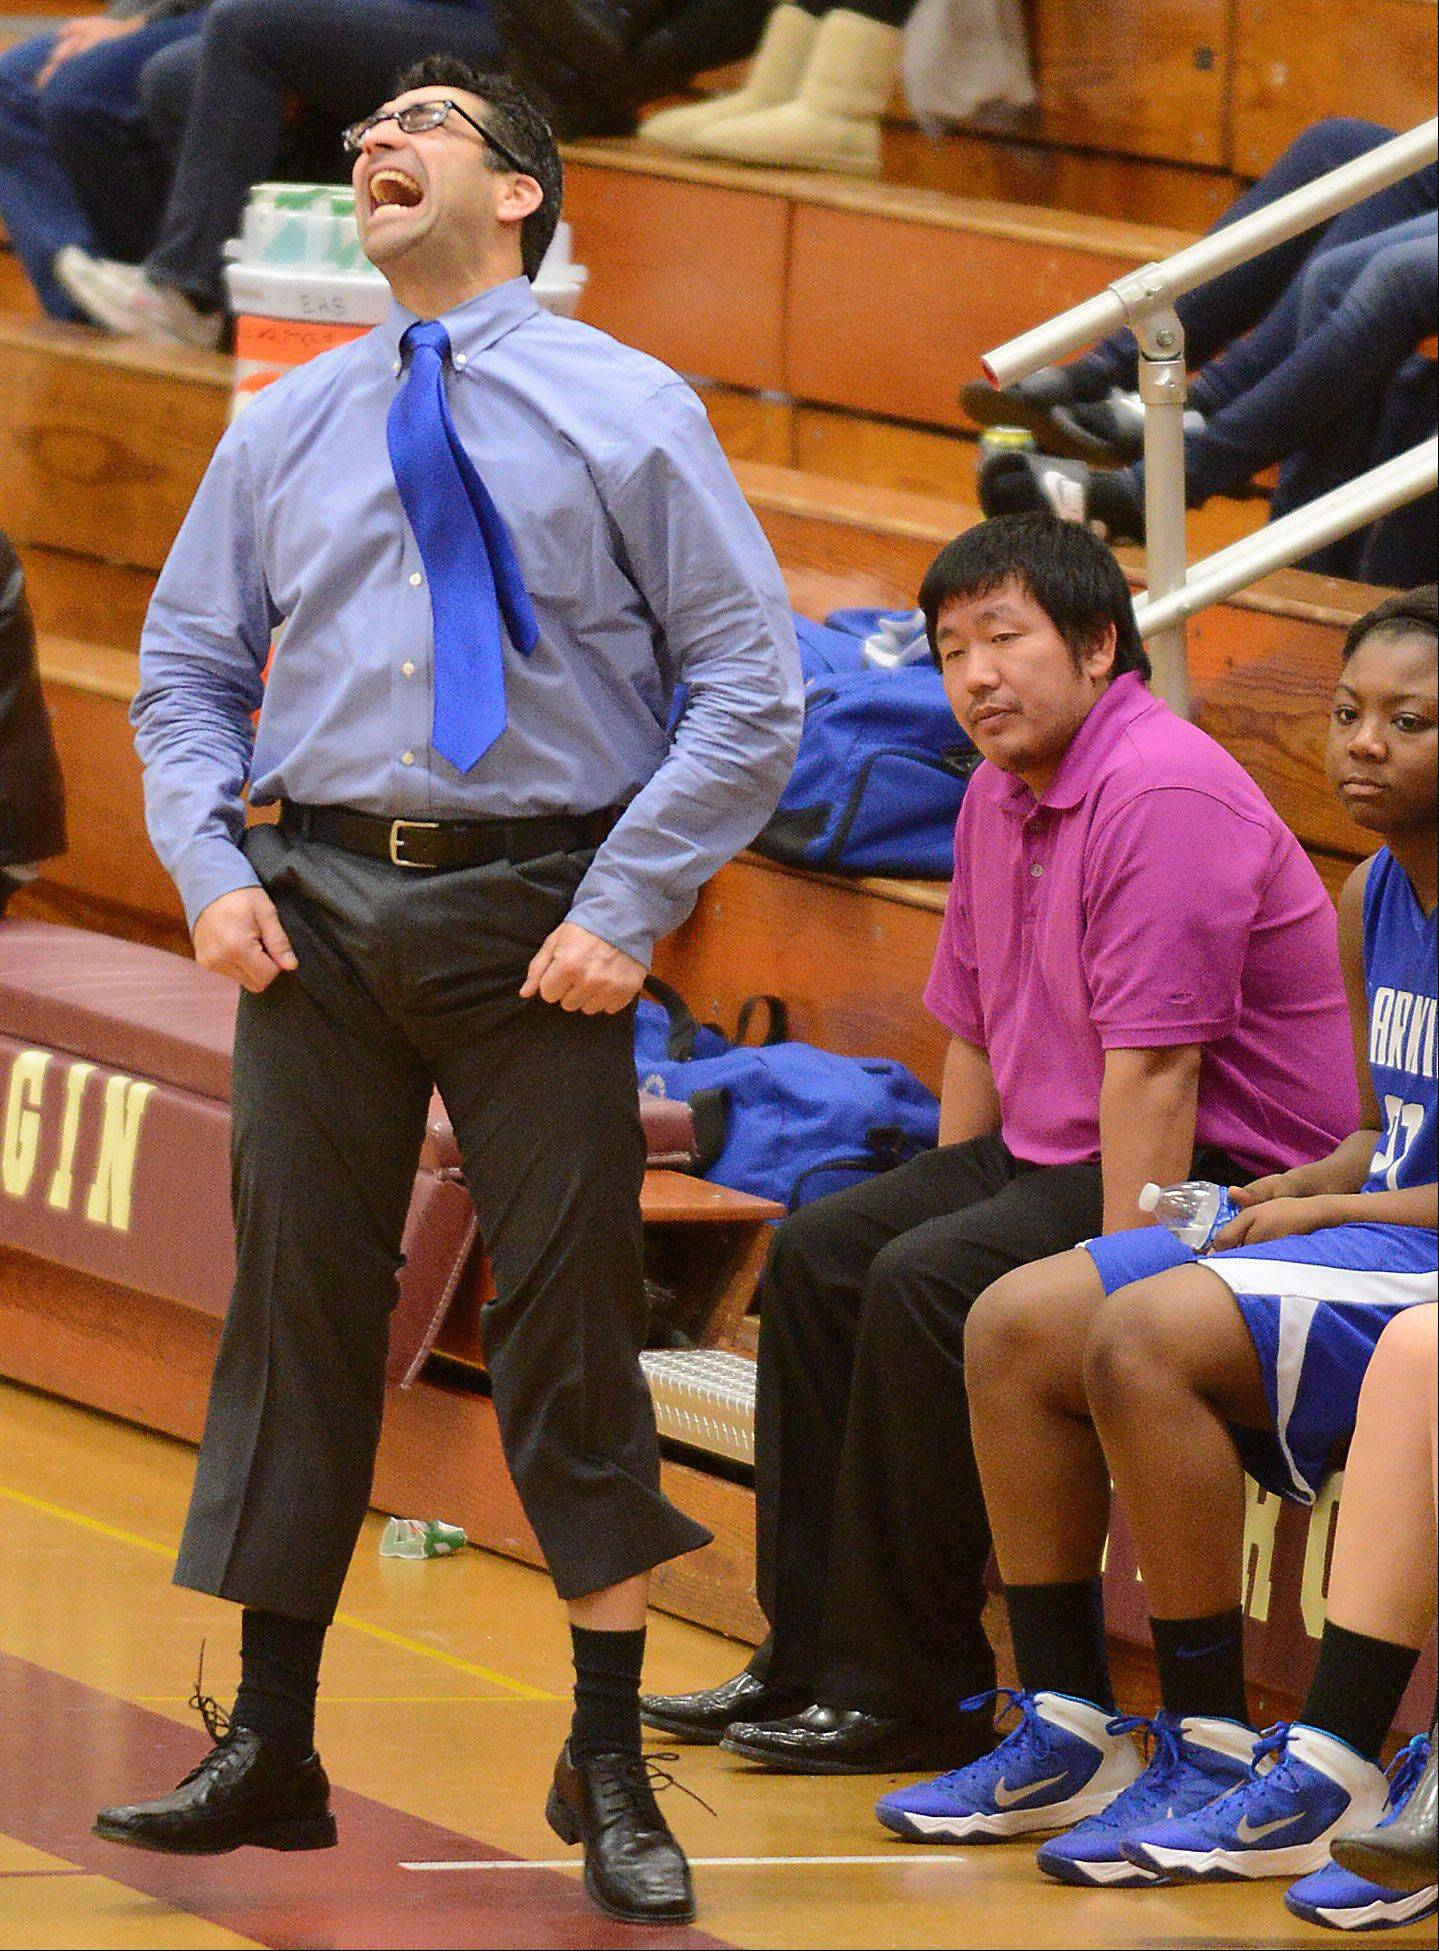 Larkin coach Ruben Flores doesn't like what he sees from his team during Friday's game at Elgin.